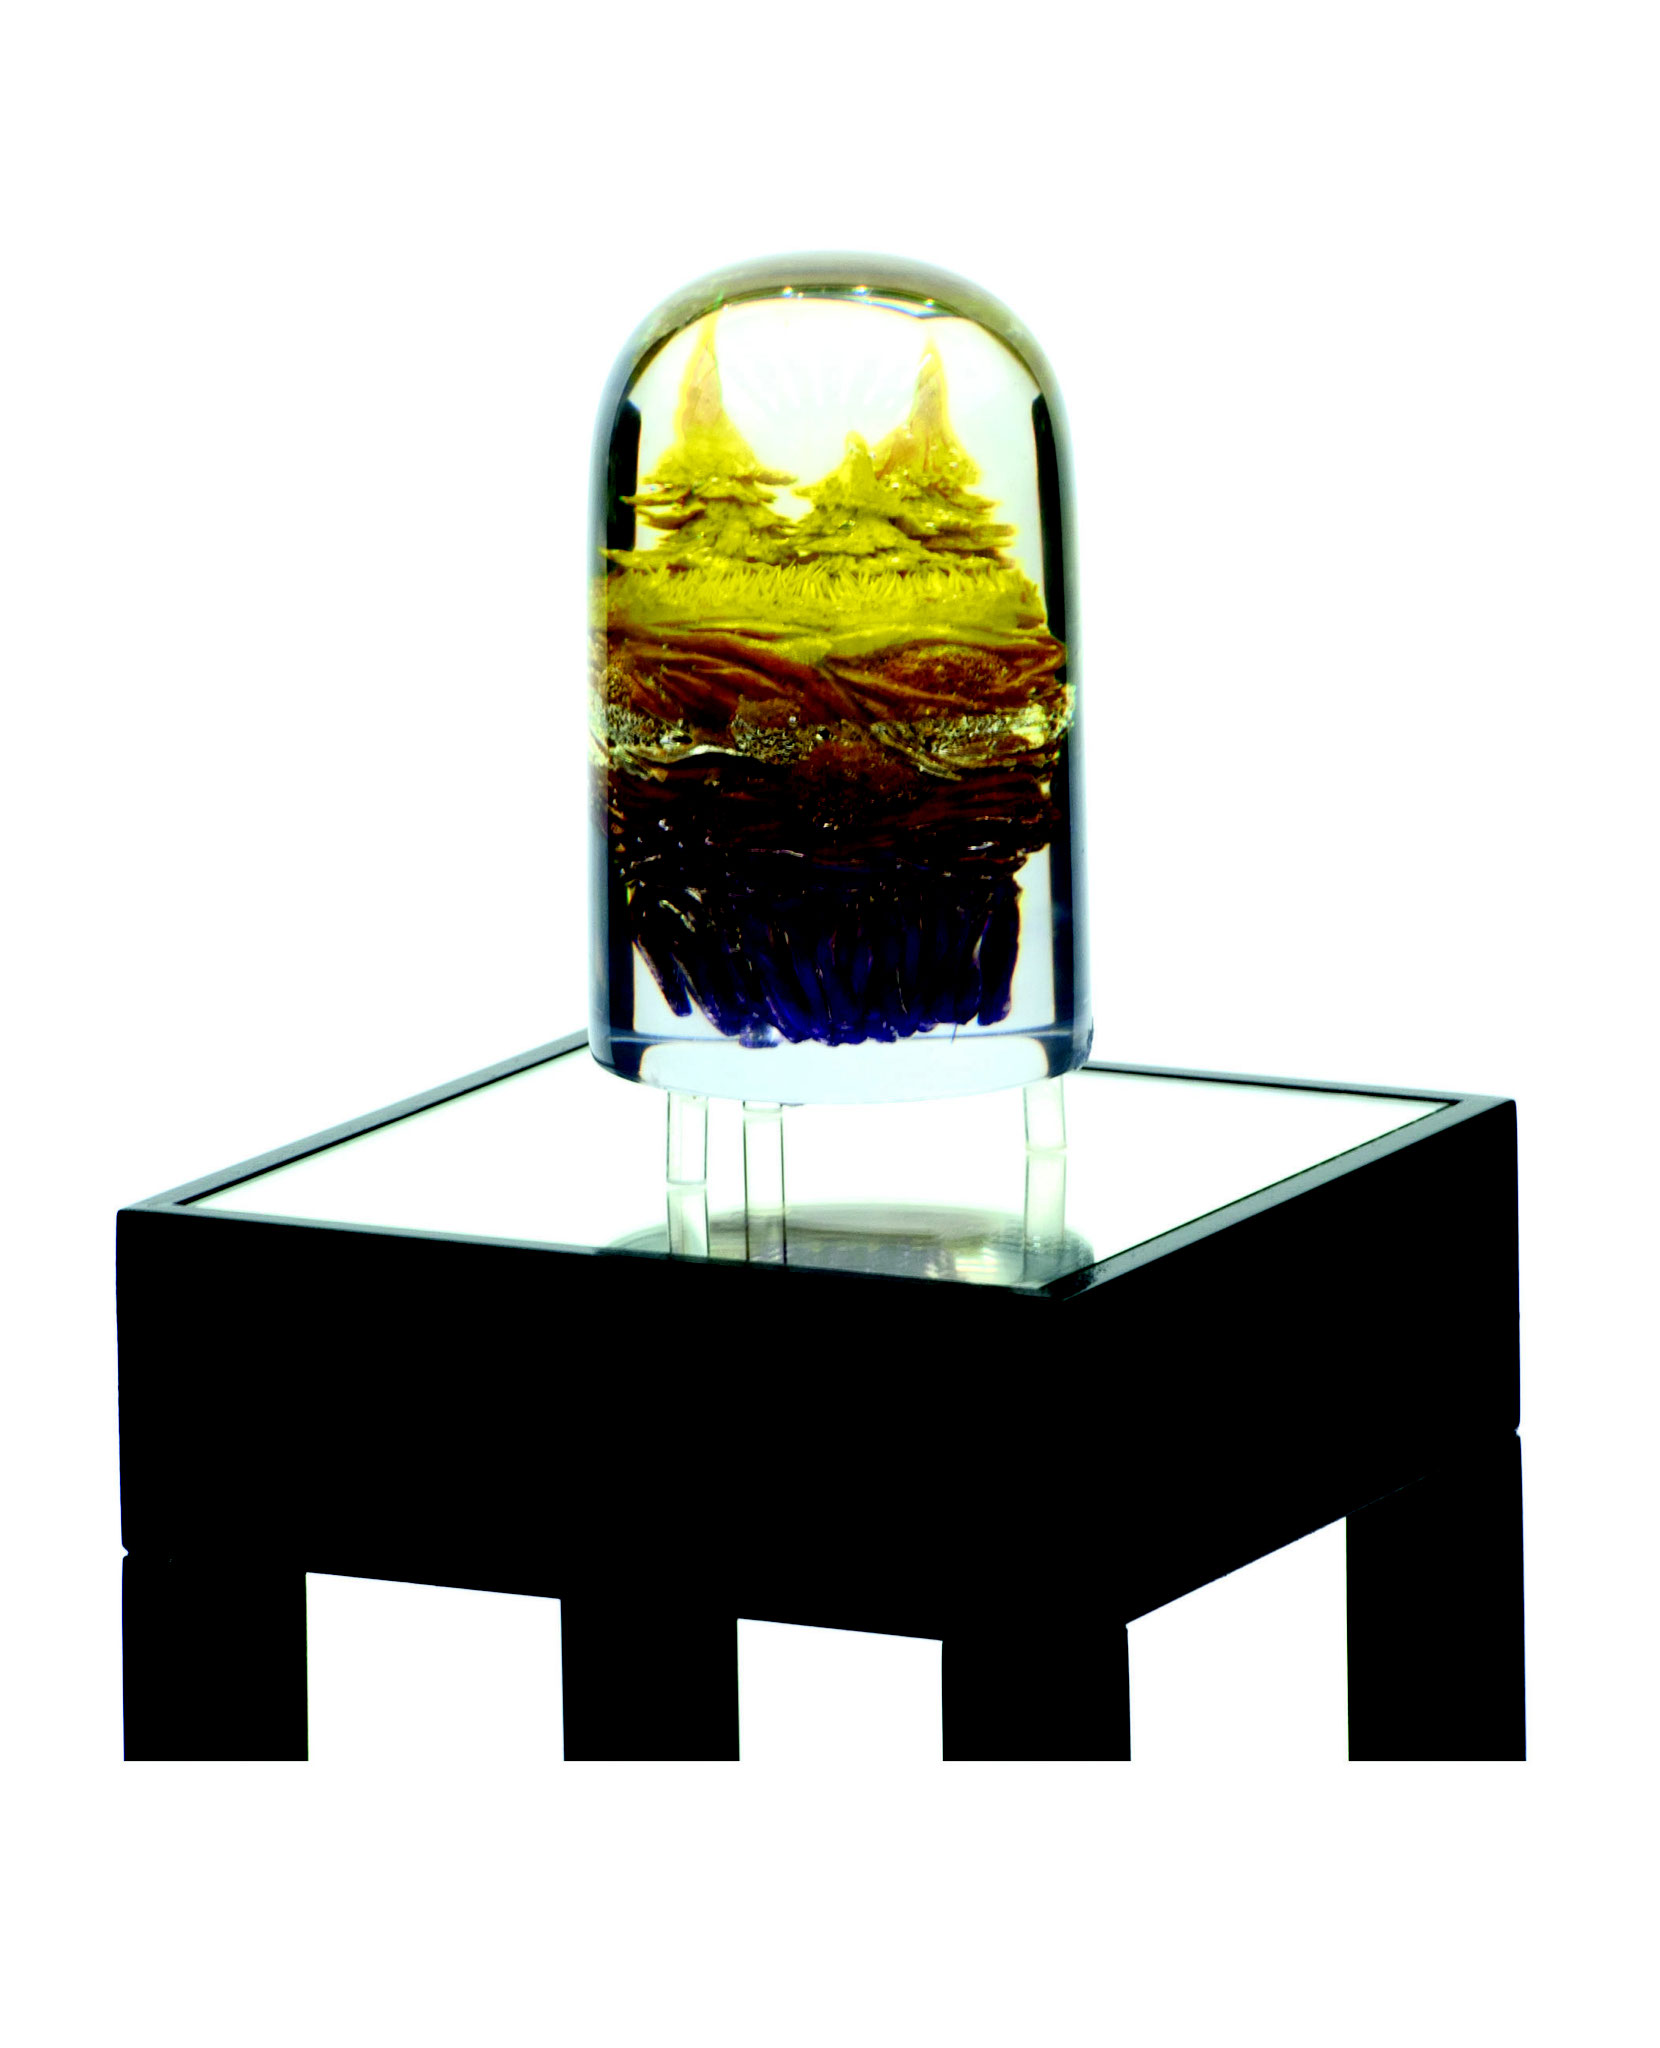 Landor (small version), polymer, polymeric resin, 2015